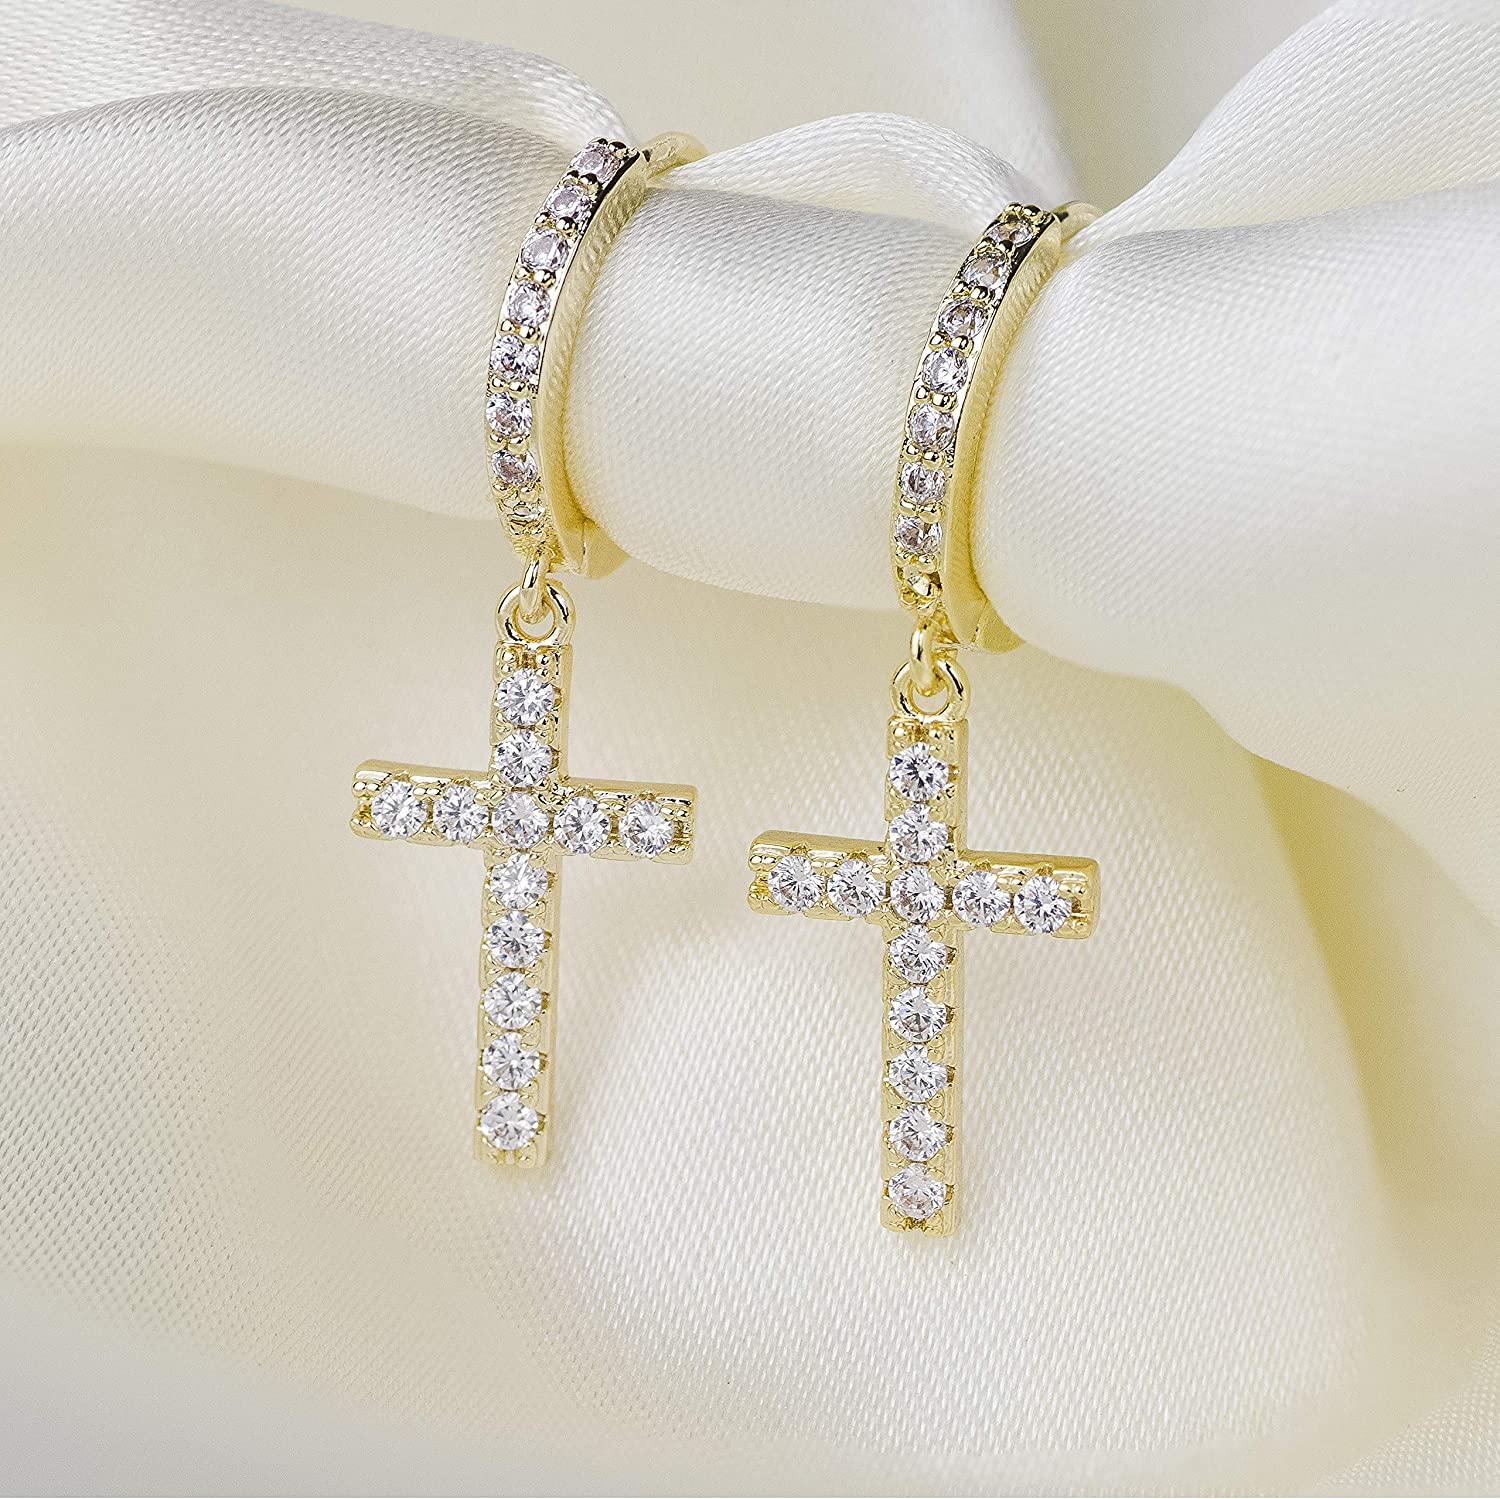 14k Gold Plated Cubic Zirconia Pave Small Hoop Earrings Dangle Cross for Women Men LAVLA Silver//Gold Cross Hoop Earrings